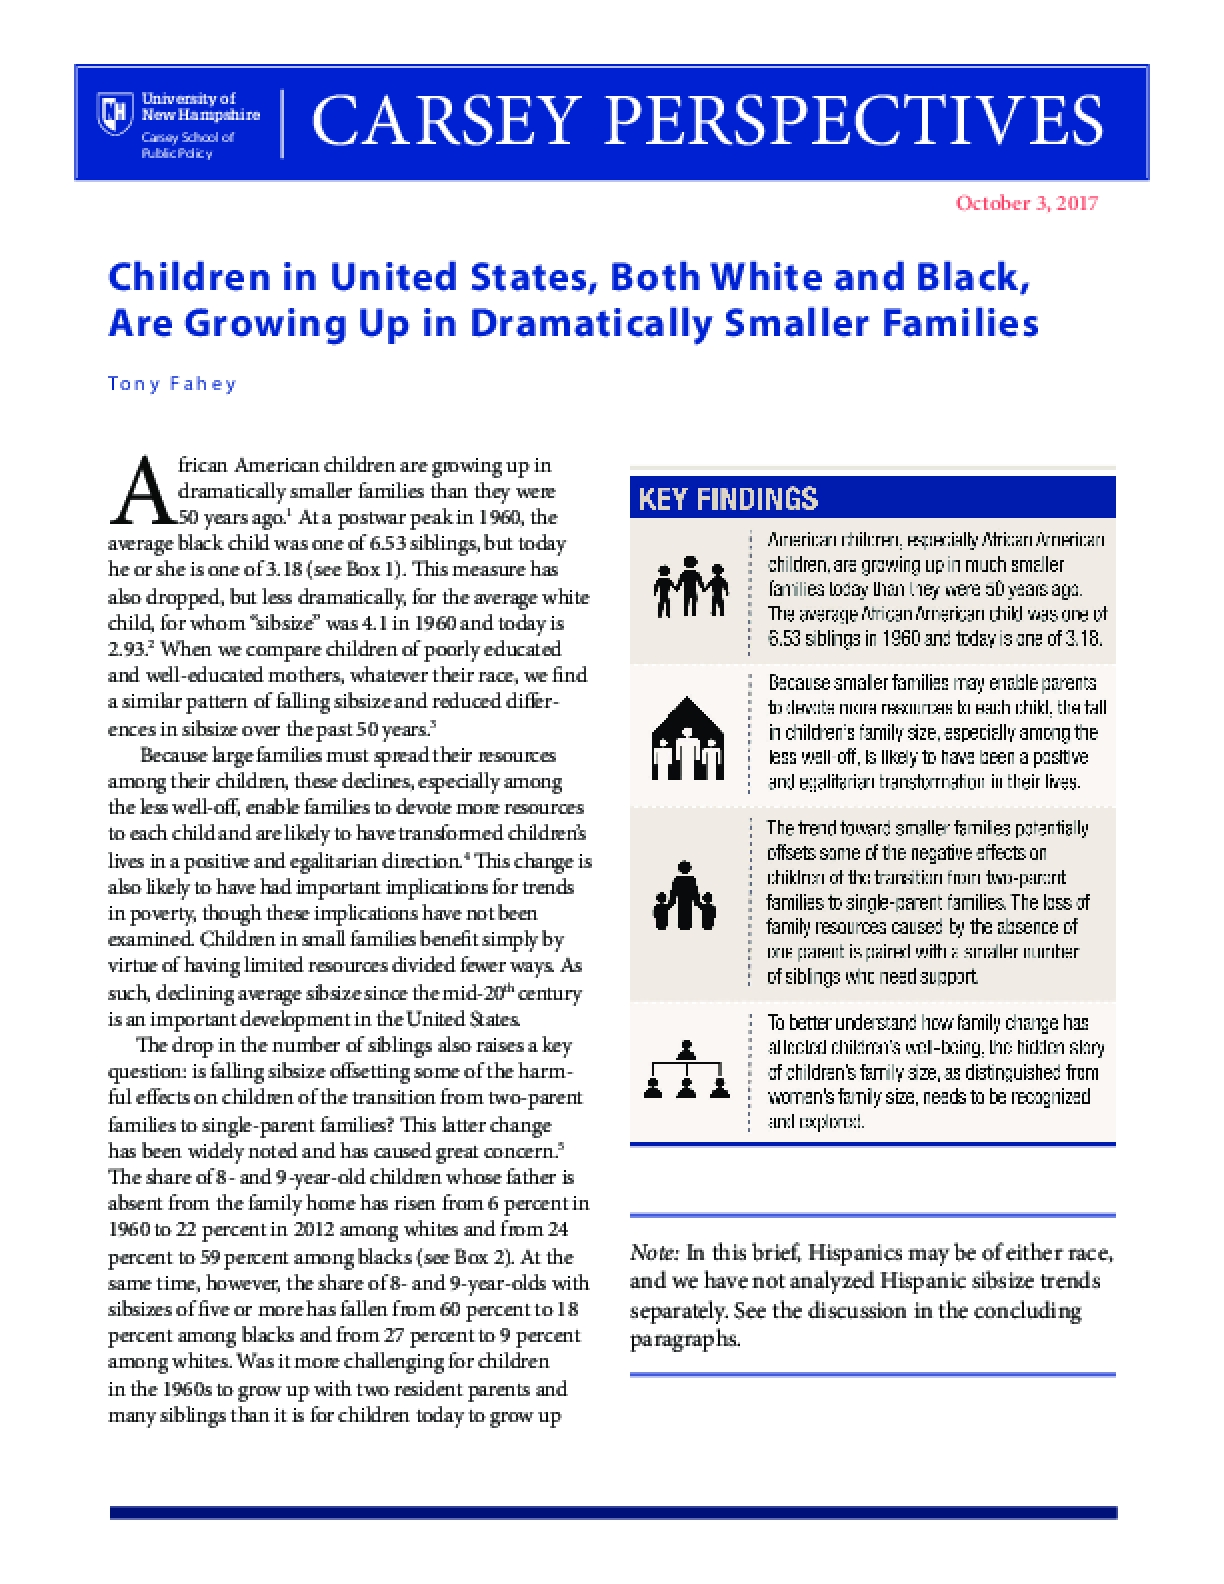 Carsey Perspectives: Children in United States, Both White and Black, Are Growing Up in Dramatically Smaller Families